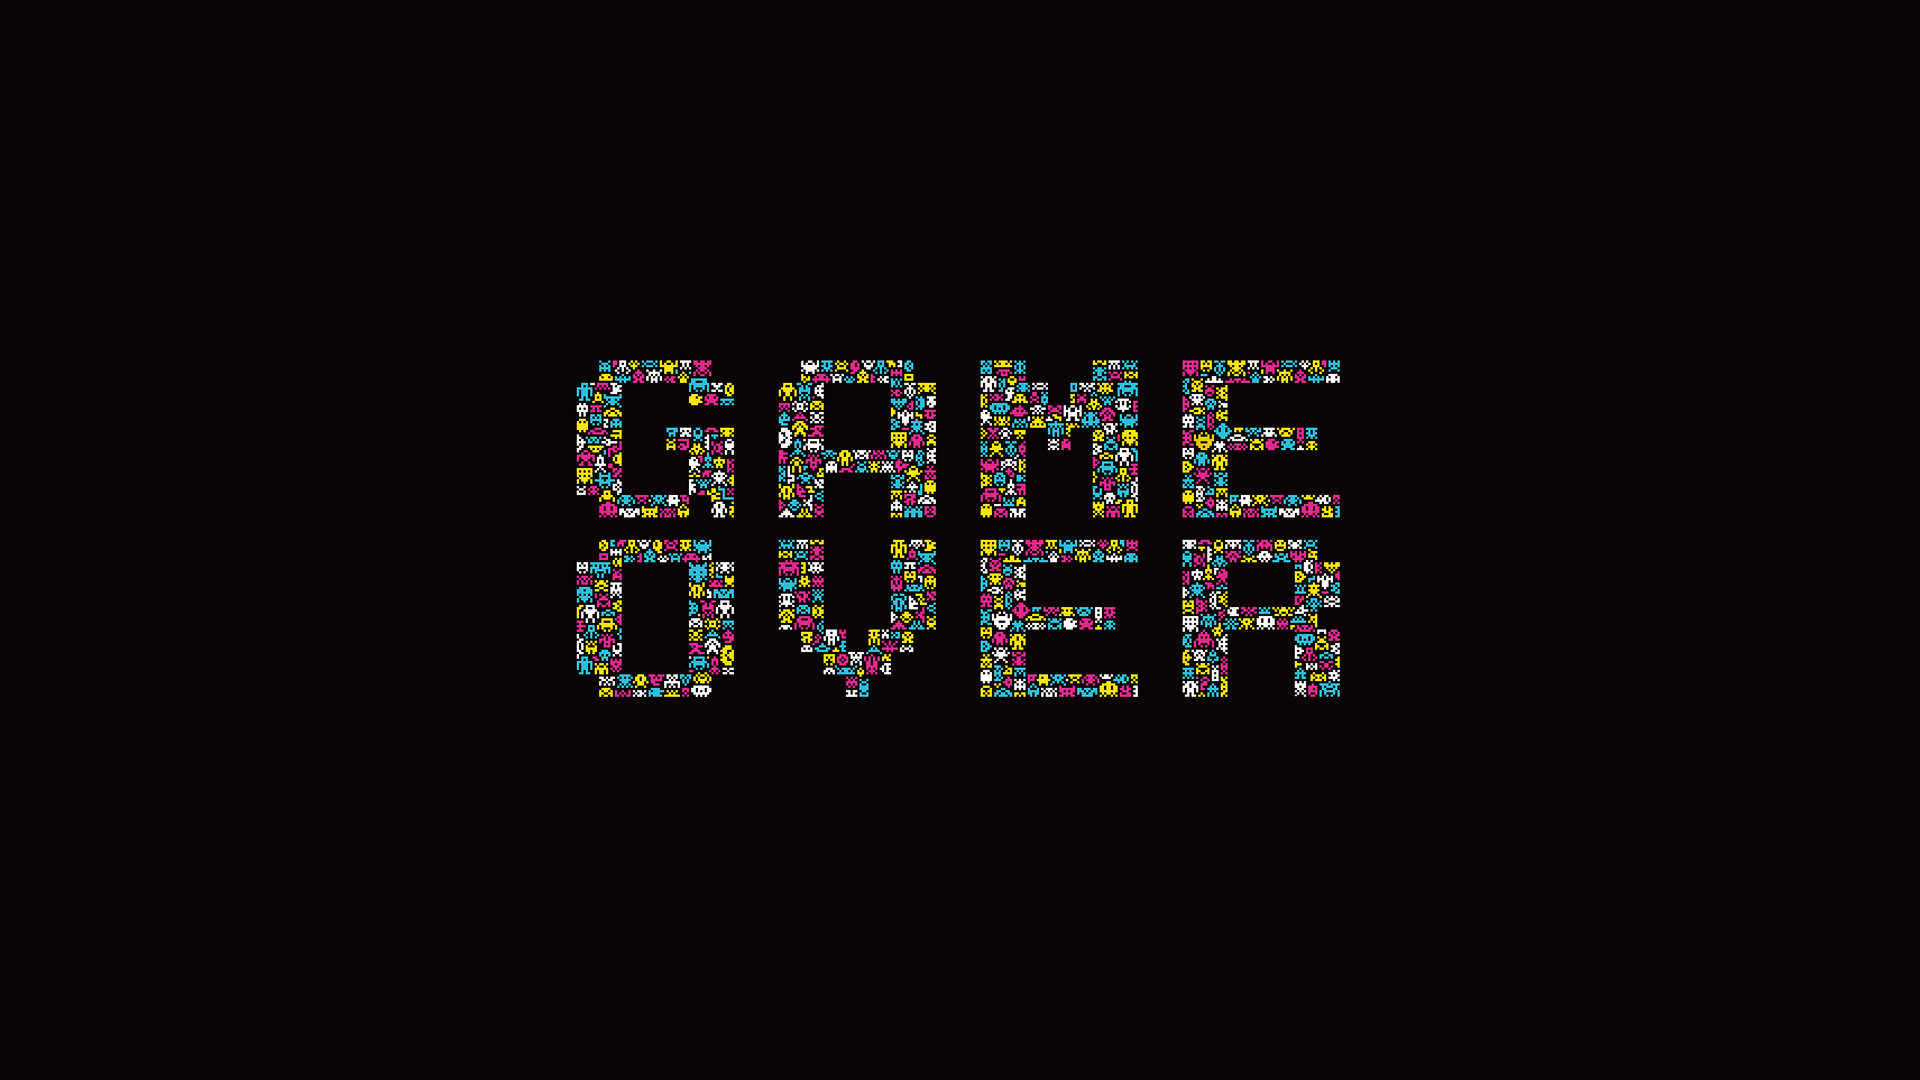 Game Over Text Retro Game Wallpaper HD jpg 268551 1920x1080